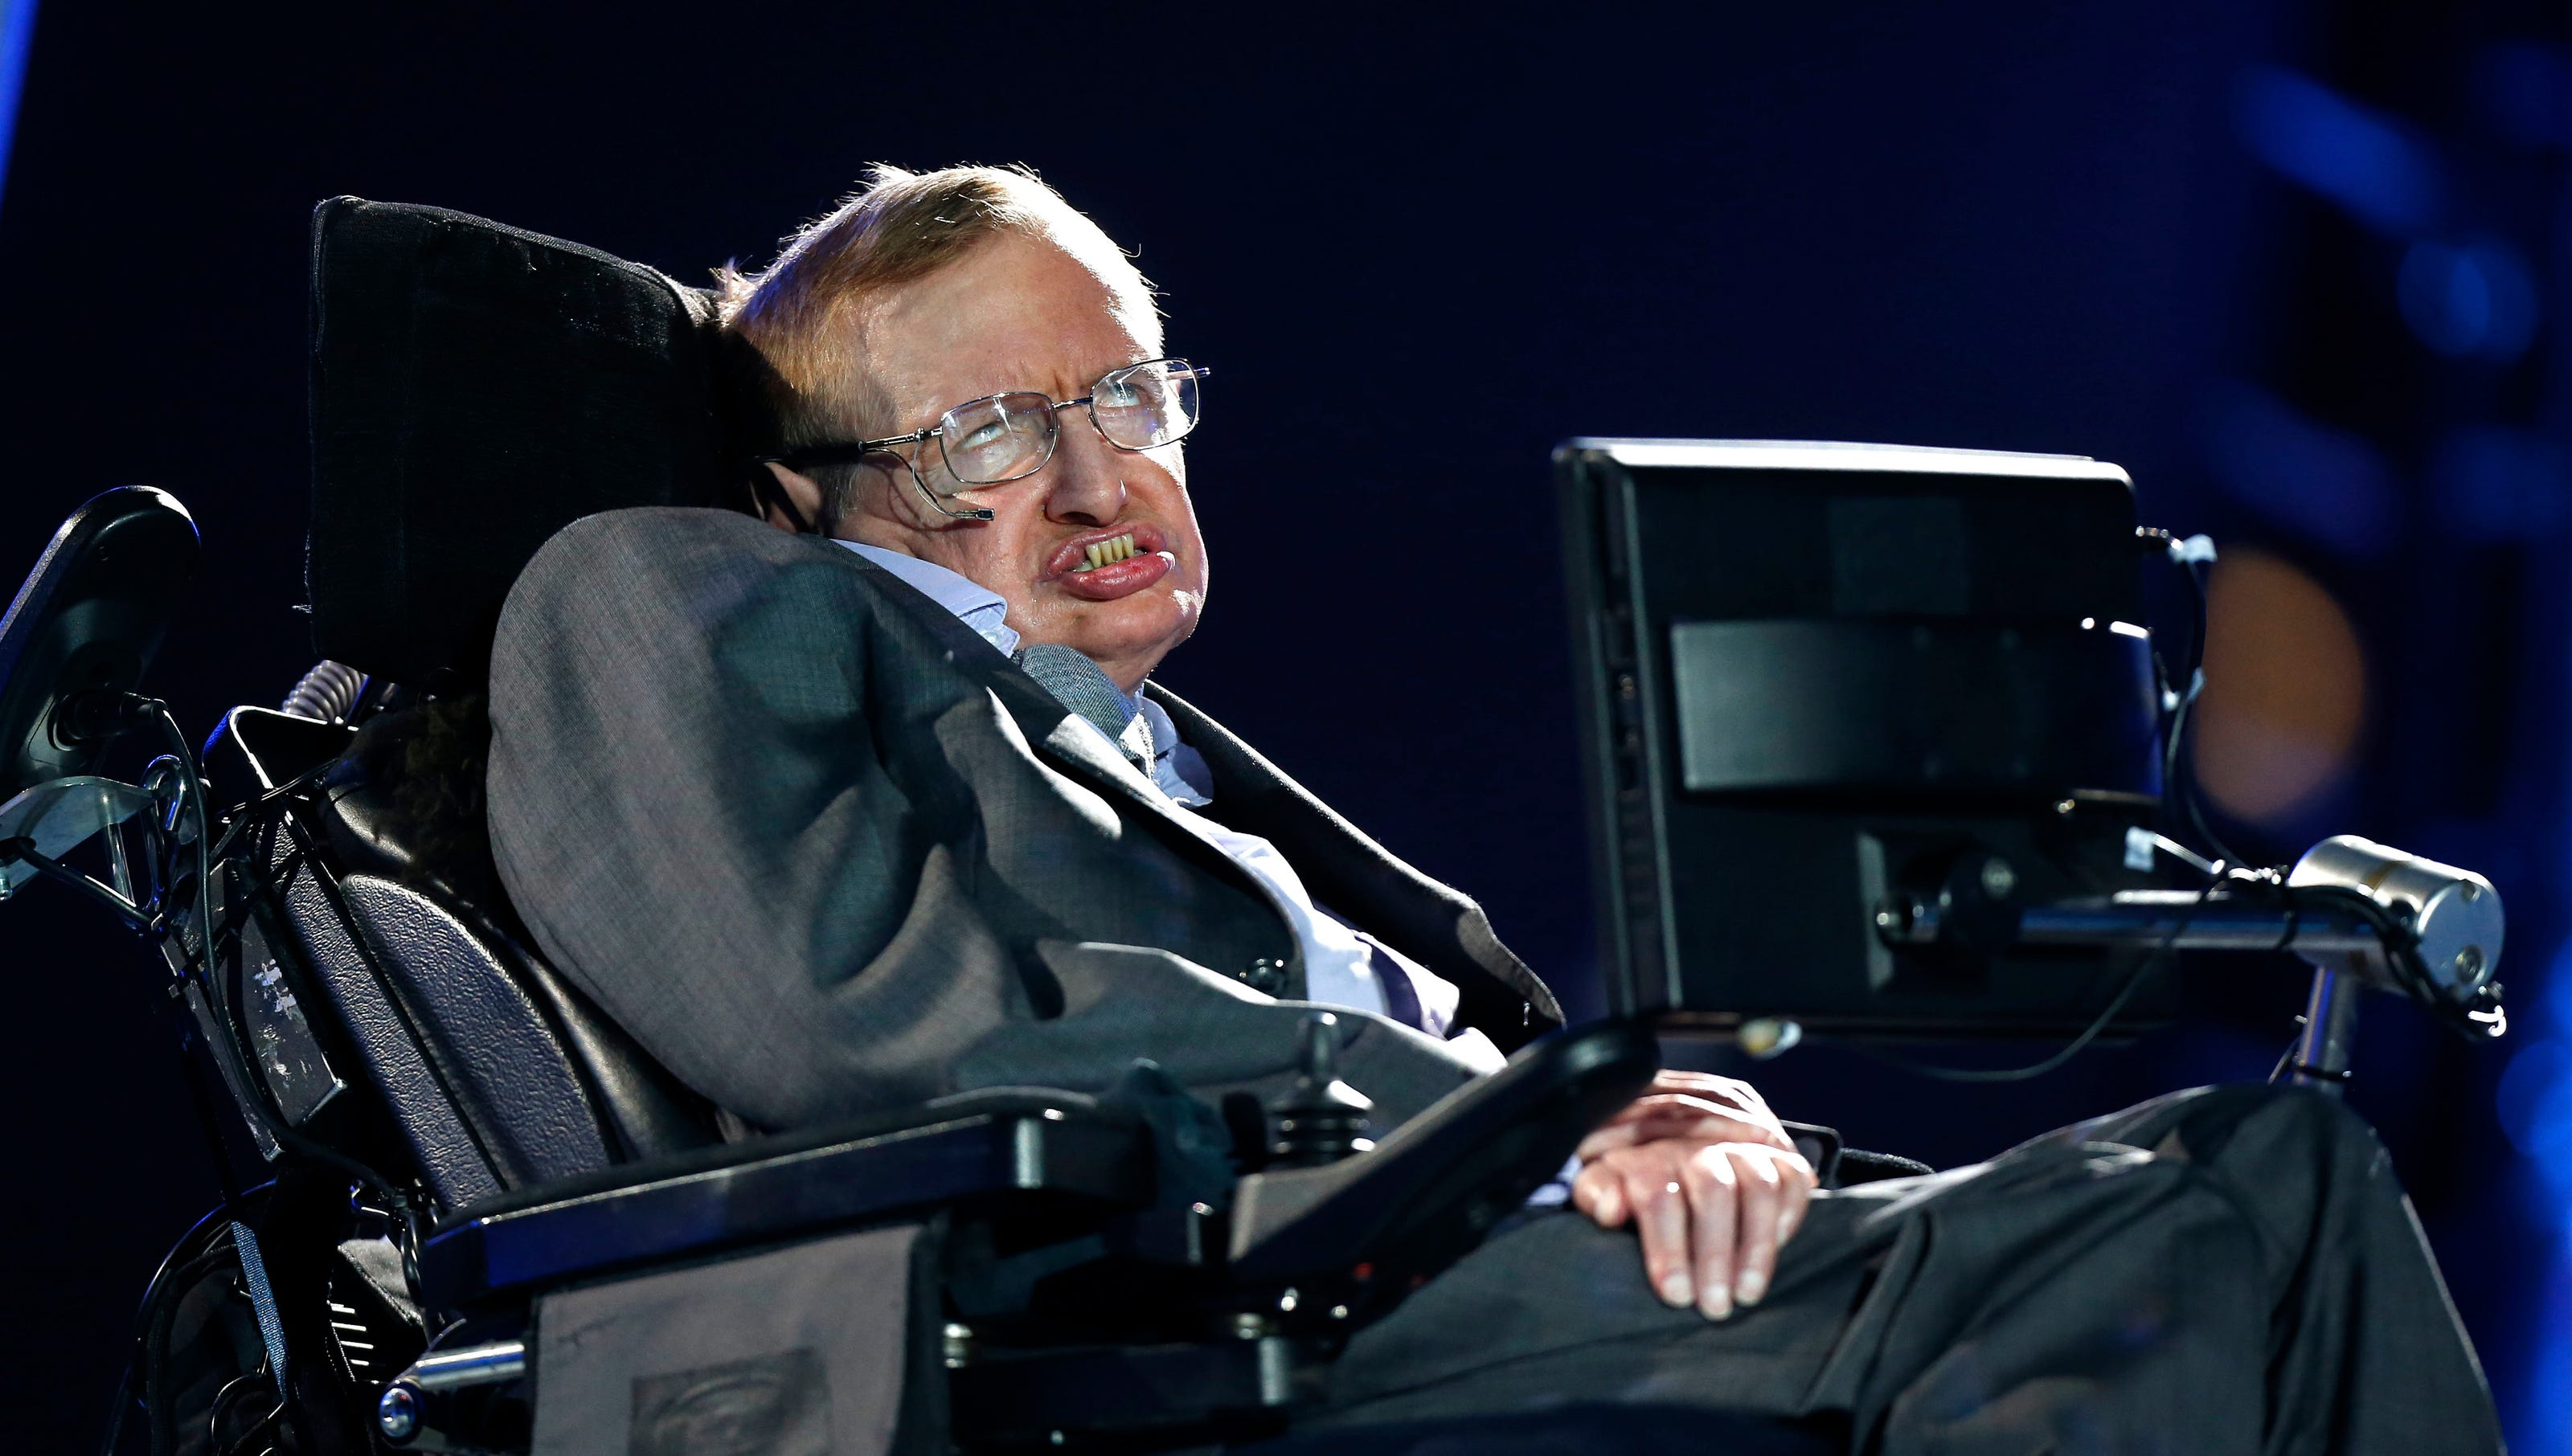 Stephen Hawking When Did He Die What He Believed About God Death